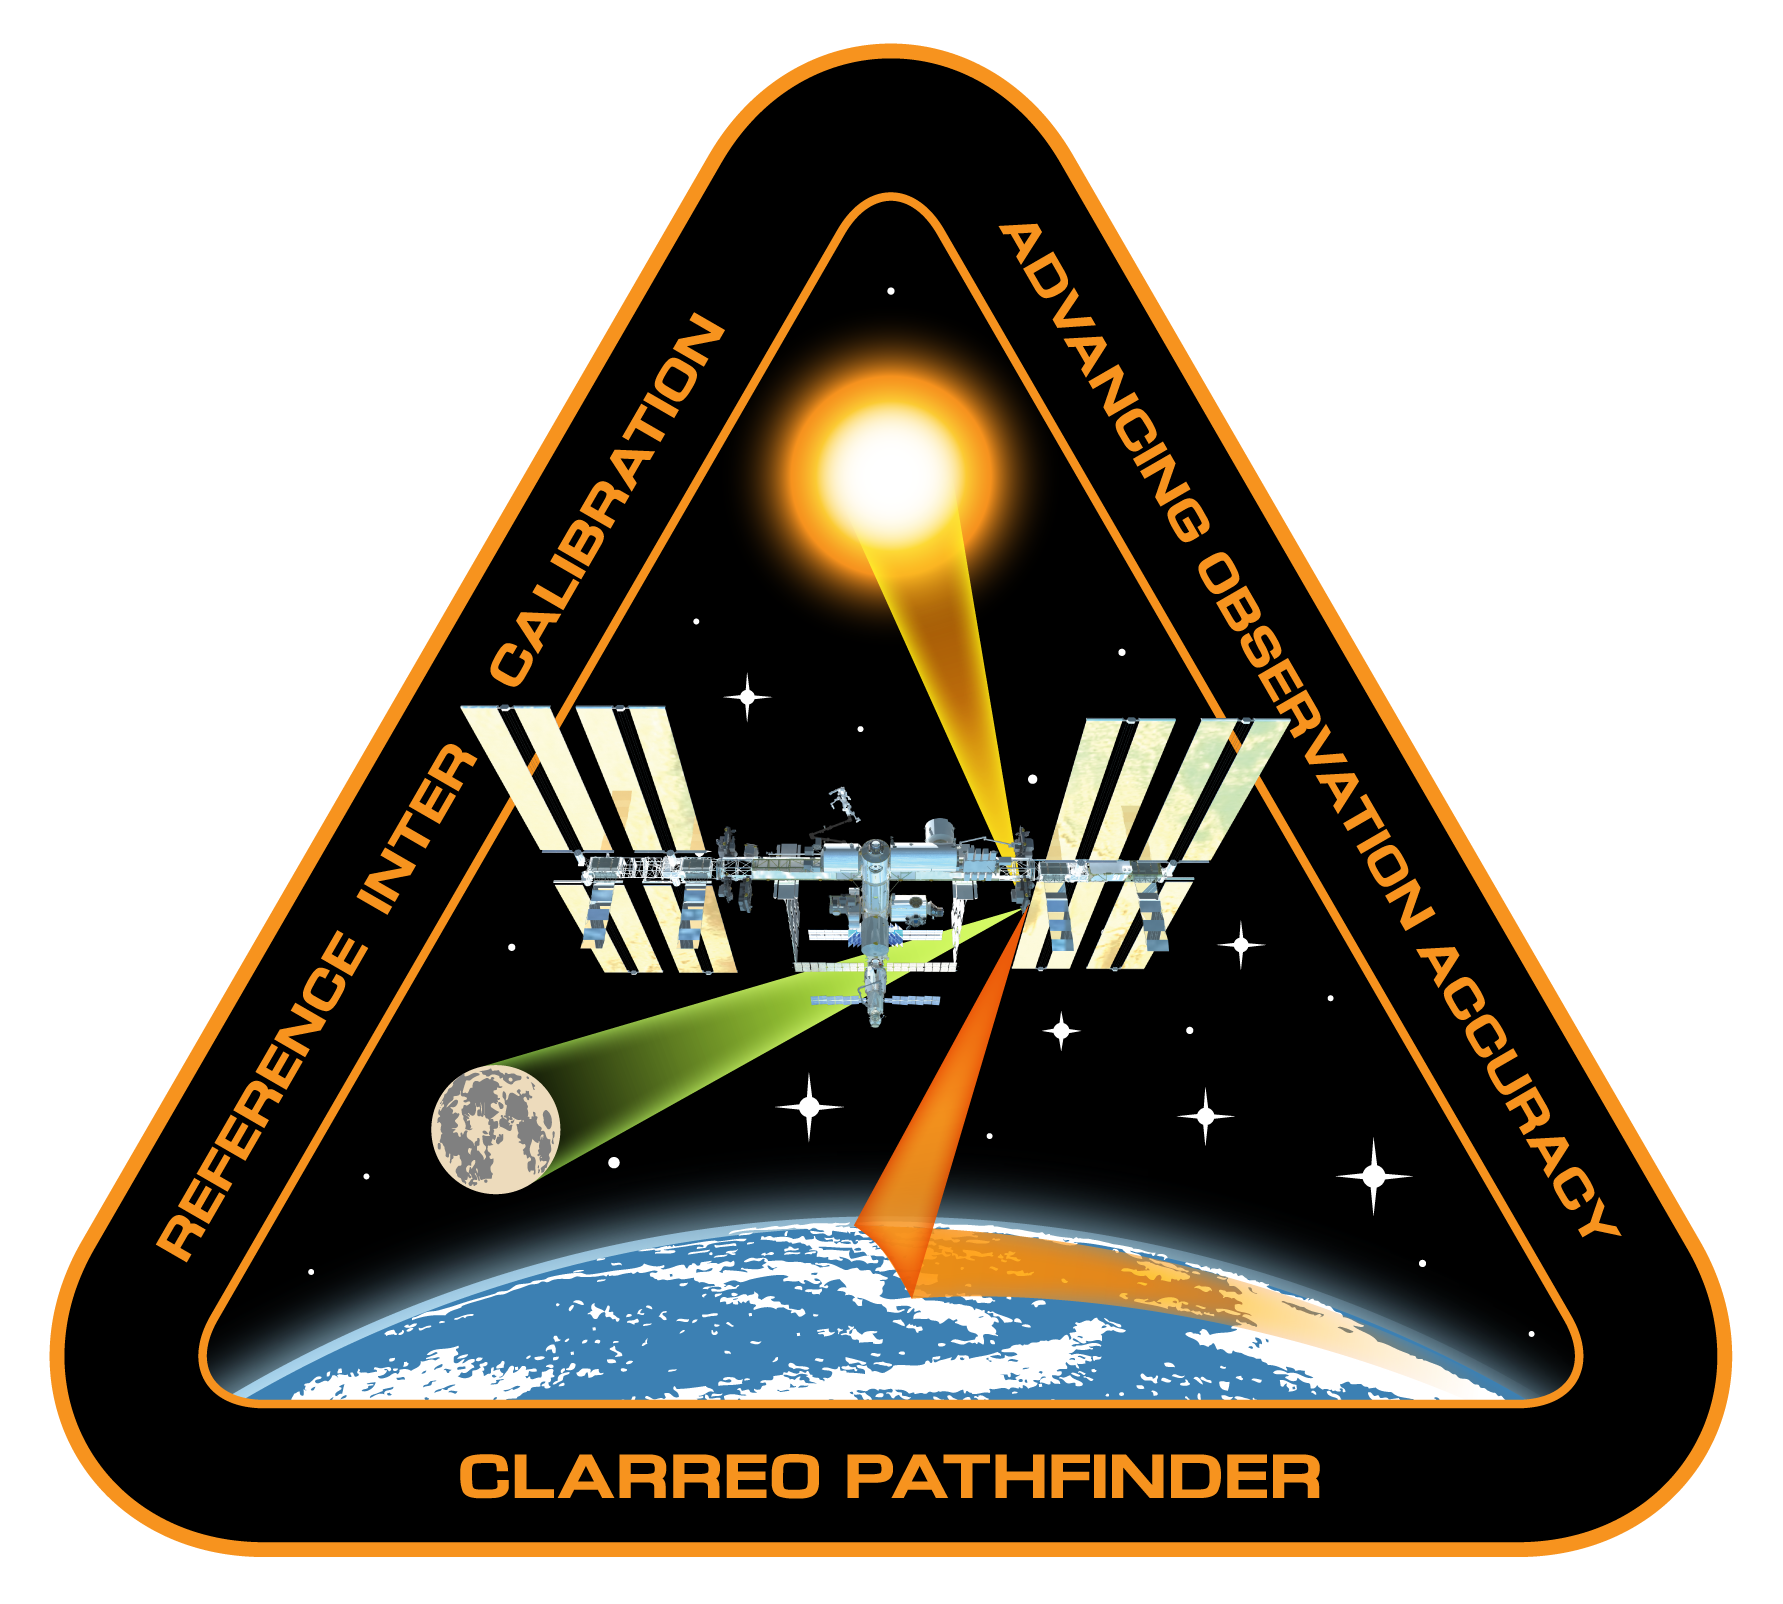 CLARREO Pathfinder mission patch